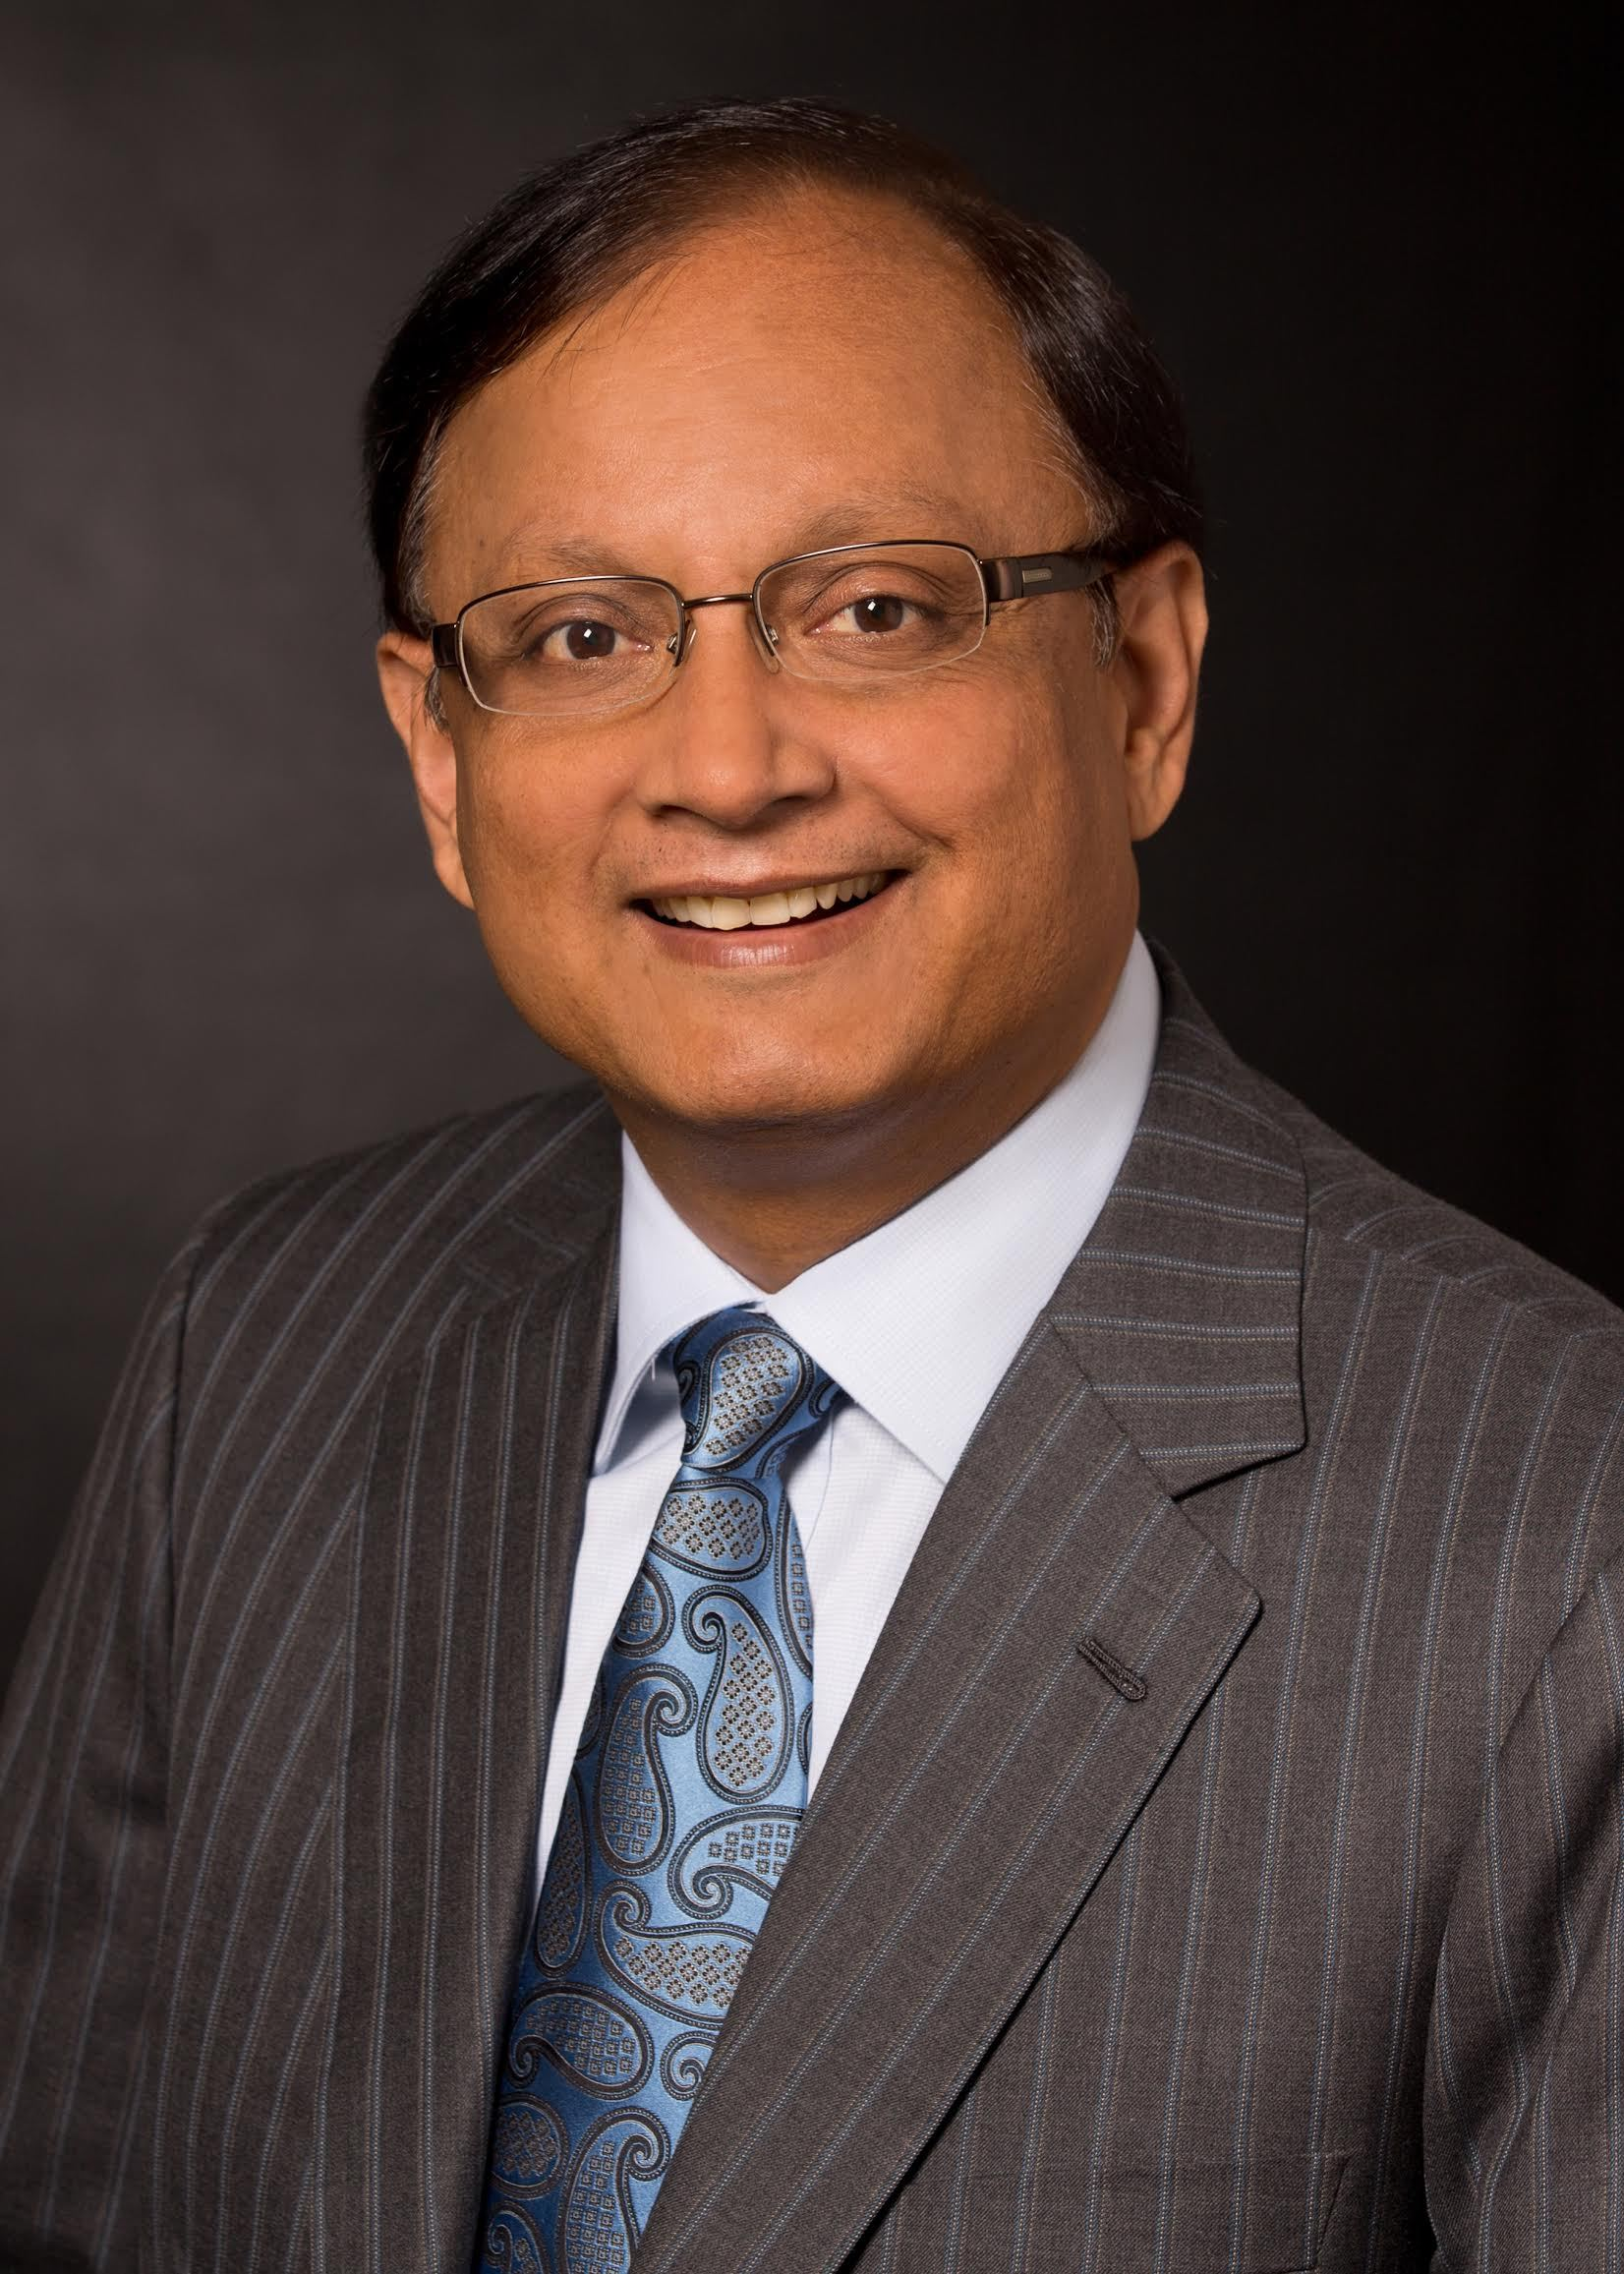 Former Cisco Chief Development Officer Pankaj Patel Joins SwiftStack's Board of Directors. (Photo: Business Wire)